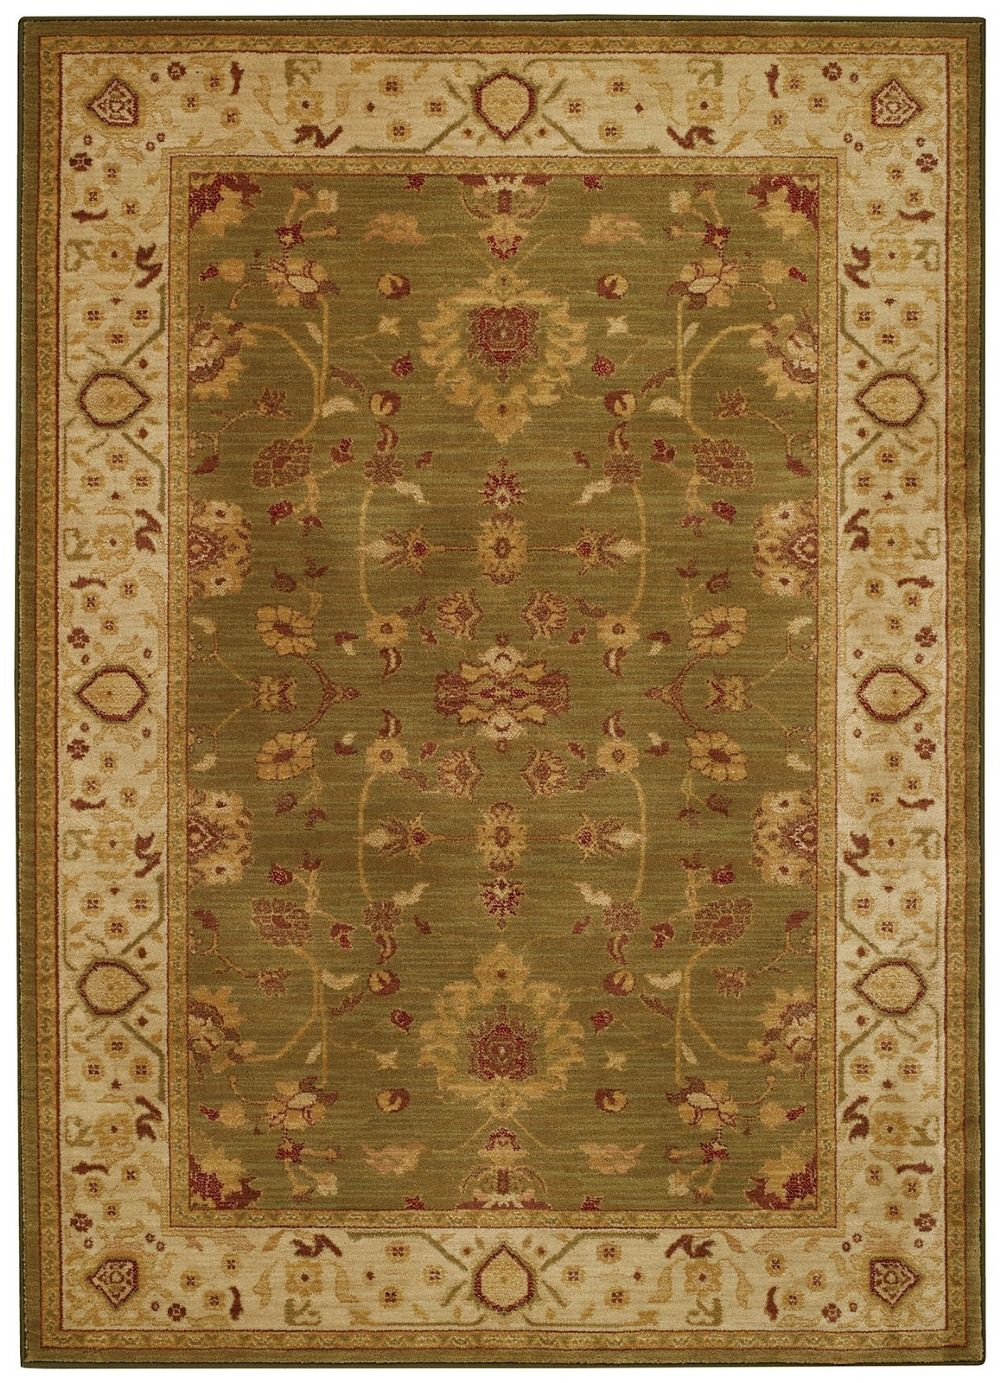 capel laud-emblem traditional area rug collection